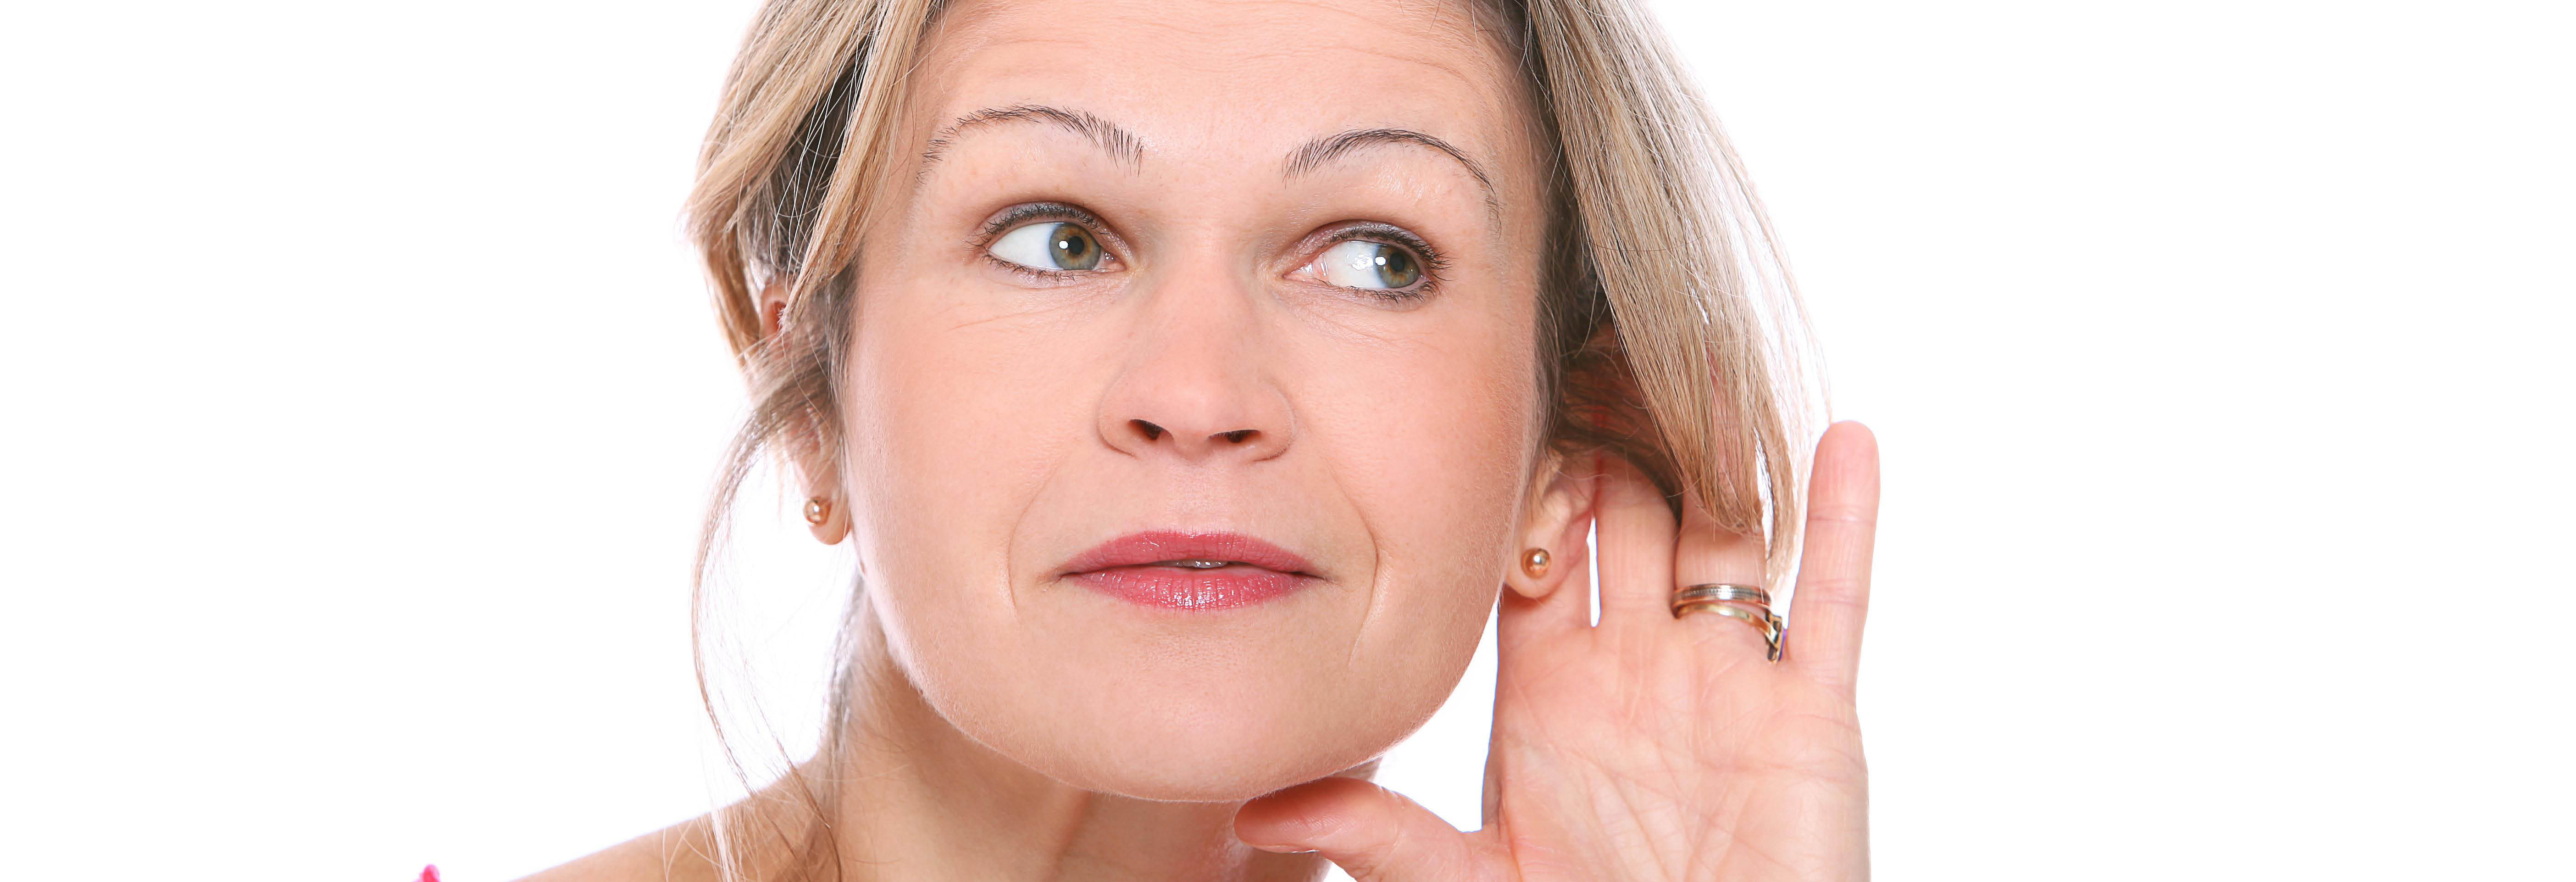 hearing aids near me losing my hearing check my hearing save on hearing aid